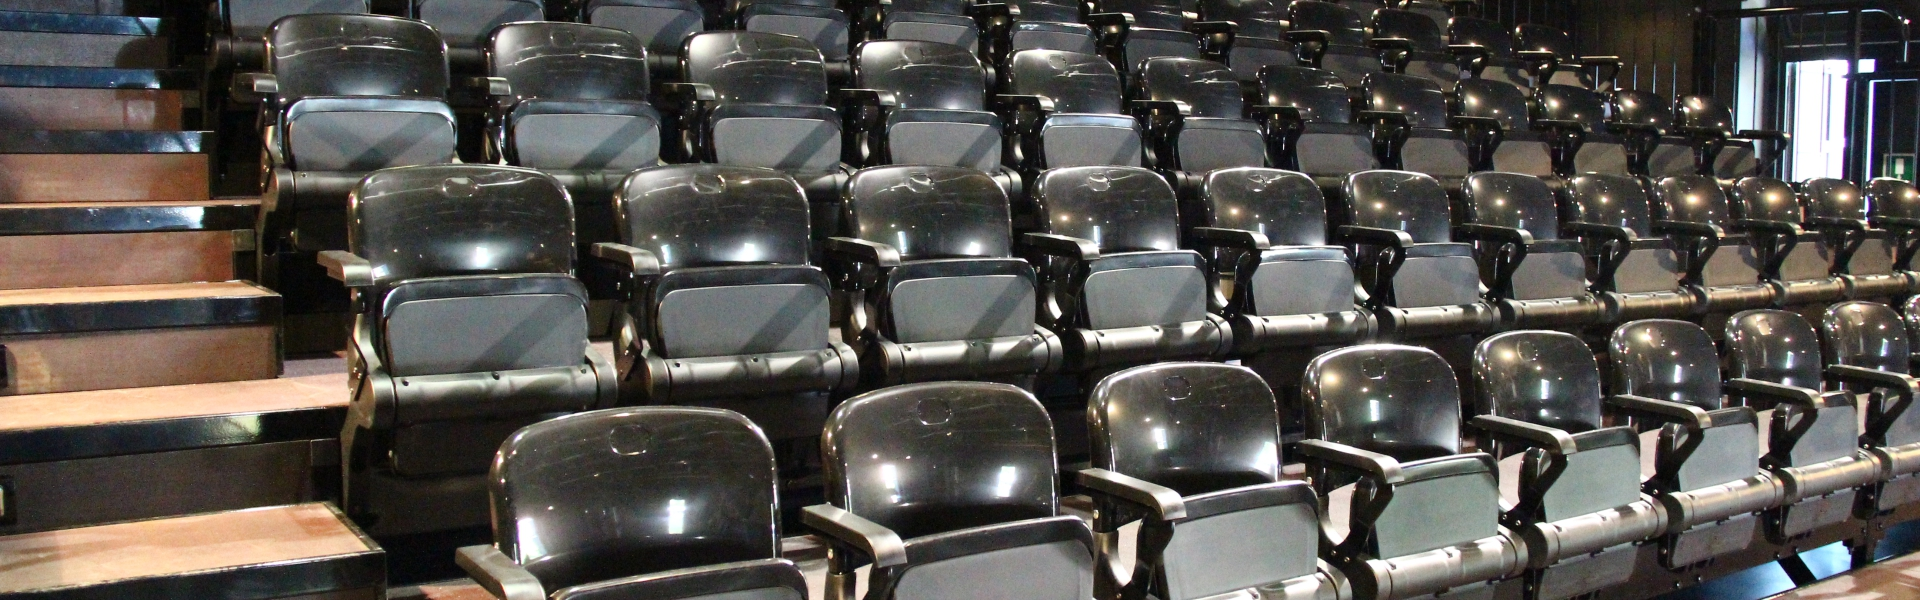 Tribuna da interno